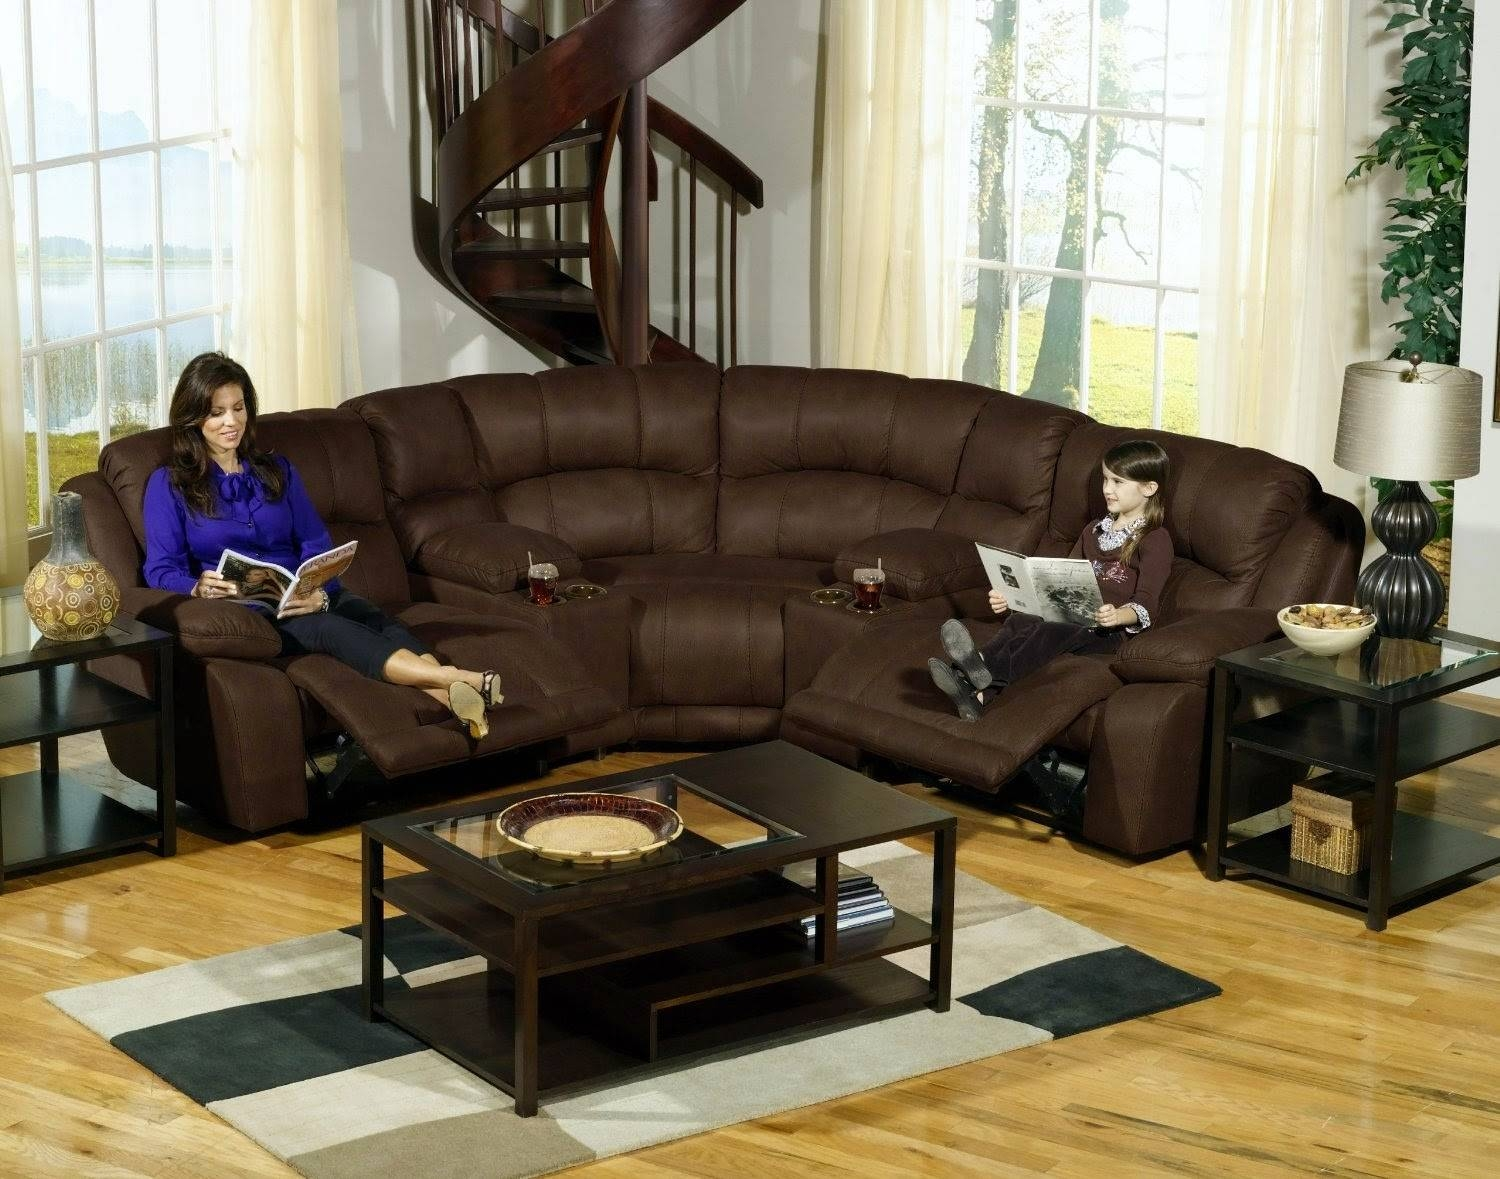 Furniture: Fantastic Sectional Couches With Recliners For Your within Small Modular Sectional Sofa (Image 10 of 25)